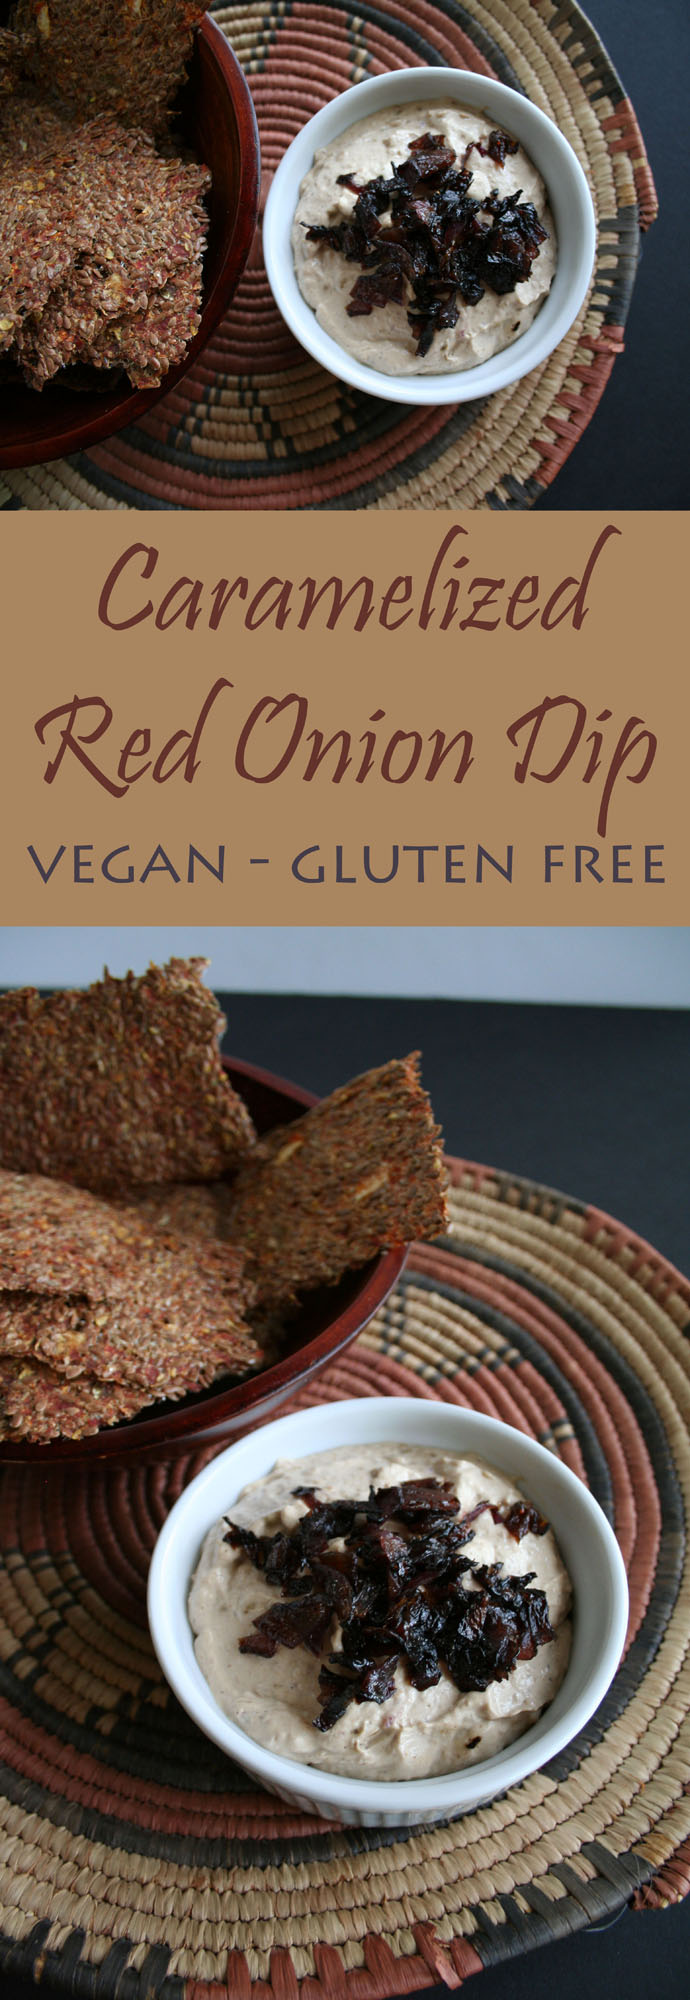 Caramelized Red Onion Dip - This rich vegan dip is way more indulgent and satisfying than any store bought dip or recipe using onion soup mix.